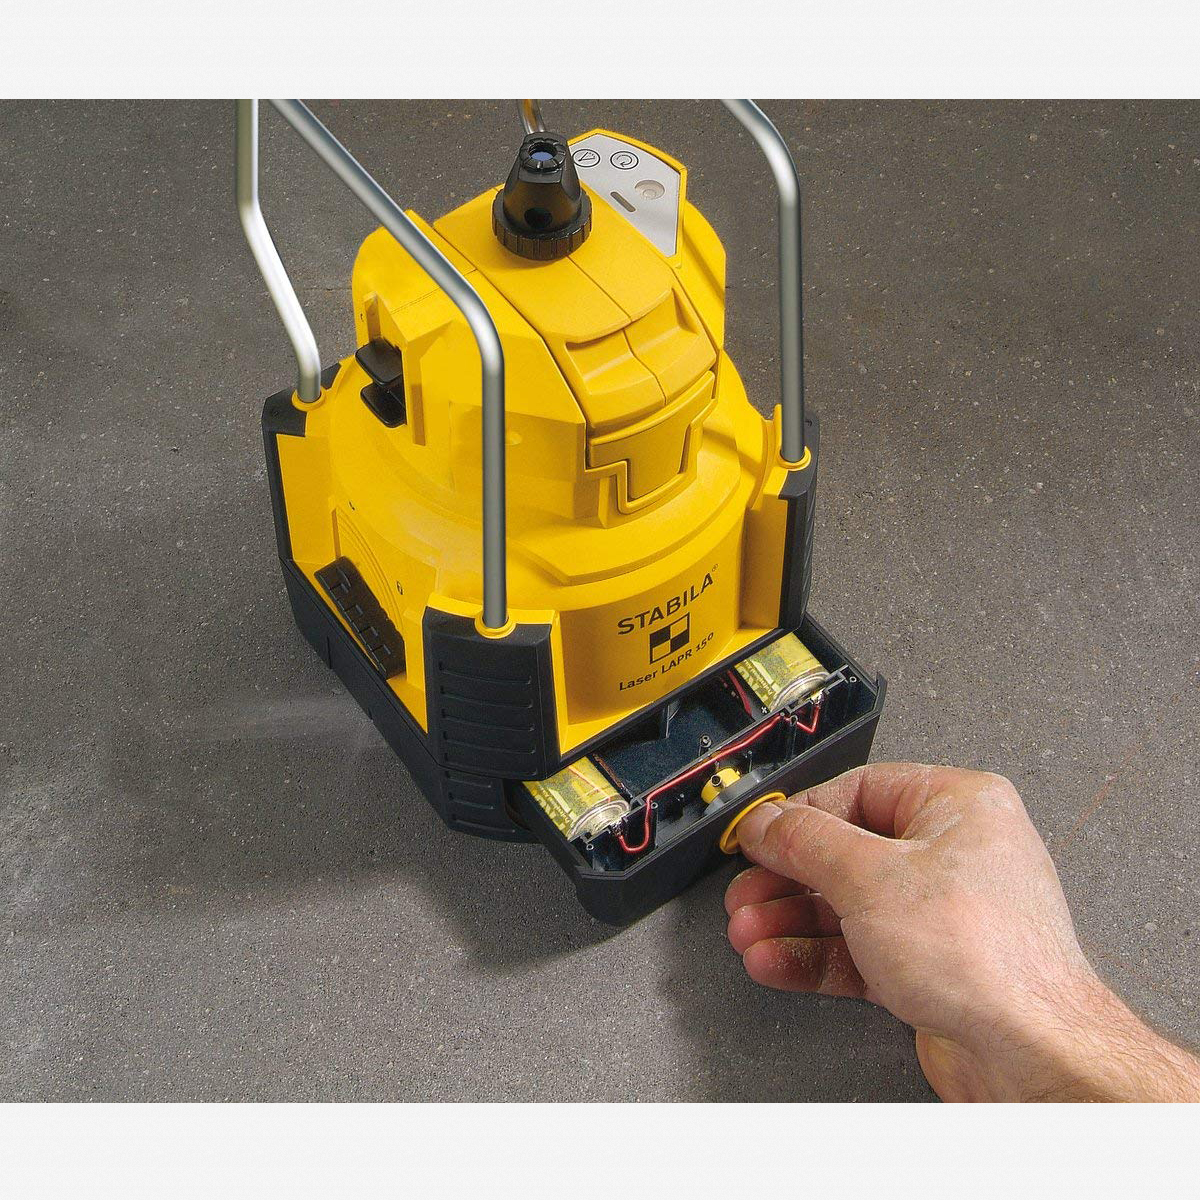 Stabila 05155 LAPR 150 Res-Con Rotating Laser - KC Tool